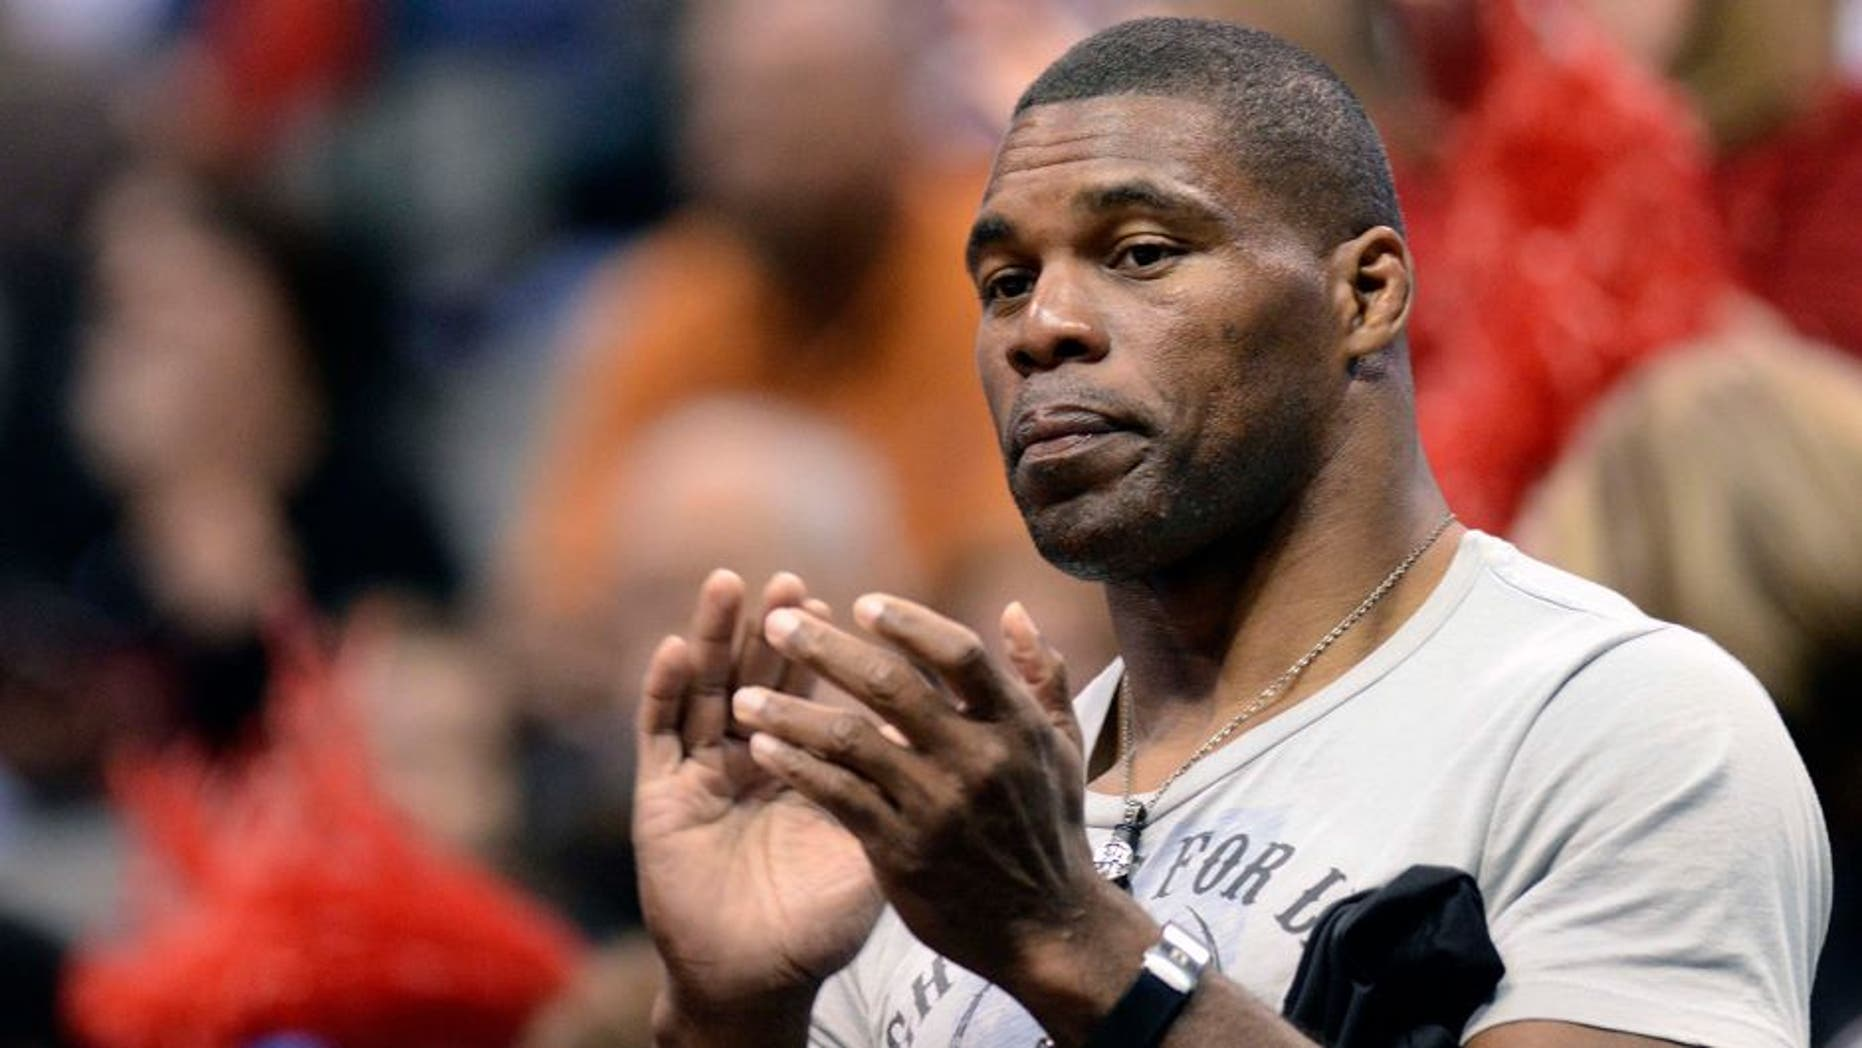 Mar 27, 2011; Dallas, TX, USA; Georgia Bulldogs former football player Herschel Walker cheers during player introductions before their game against the Texas A&M Aggies during the semifinals of the Dallas regional of the 2011 NCAA women's basketball tournament at the American Airlines Center. Mandatory Credit: Matt Strasen-USA TODAY Sports